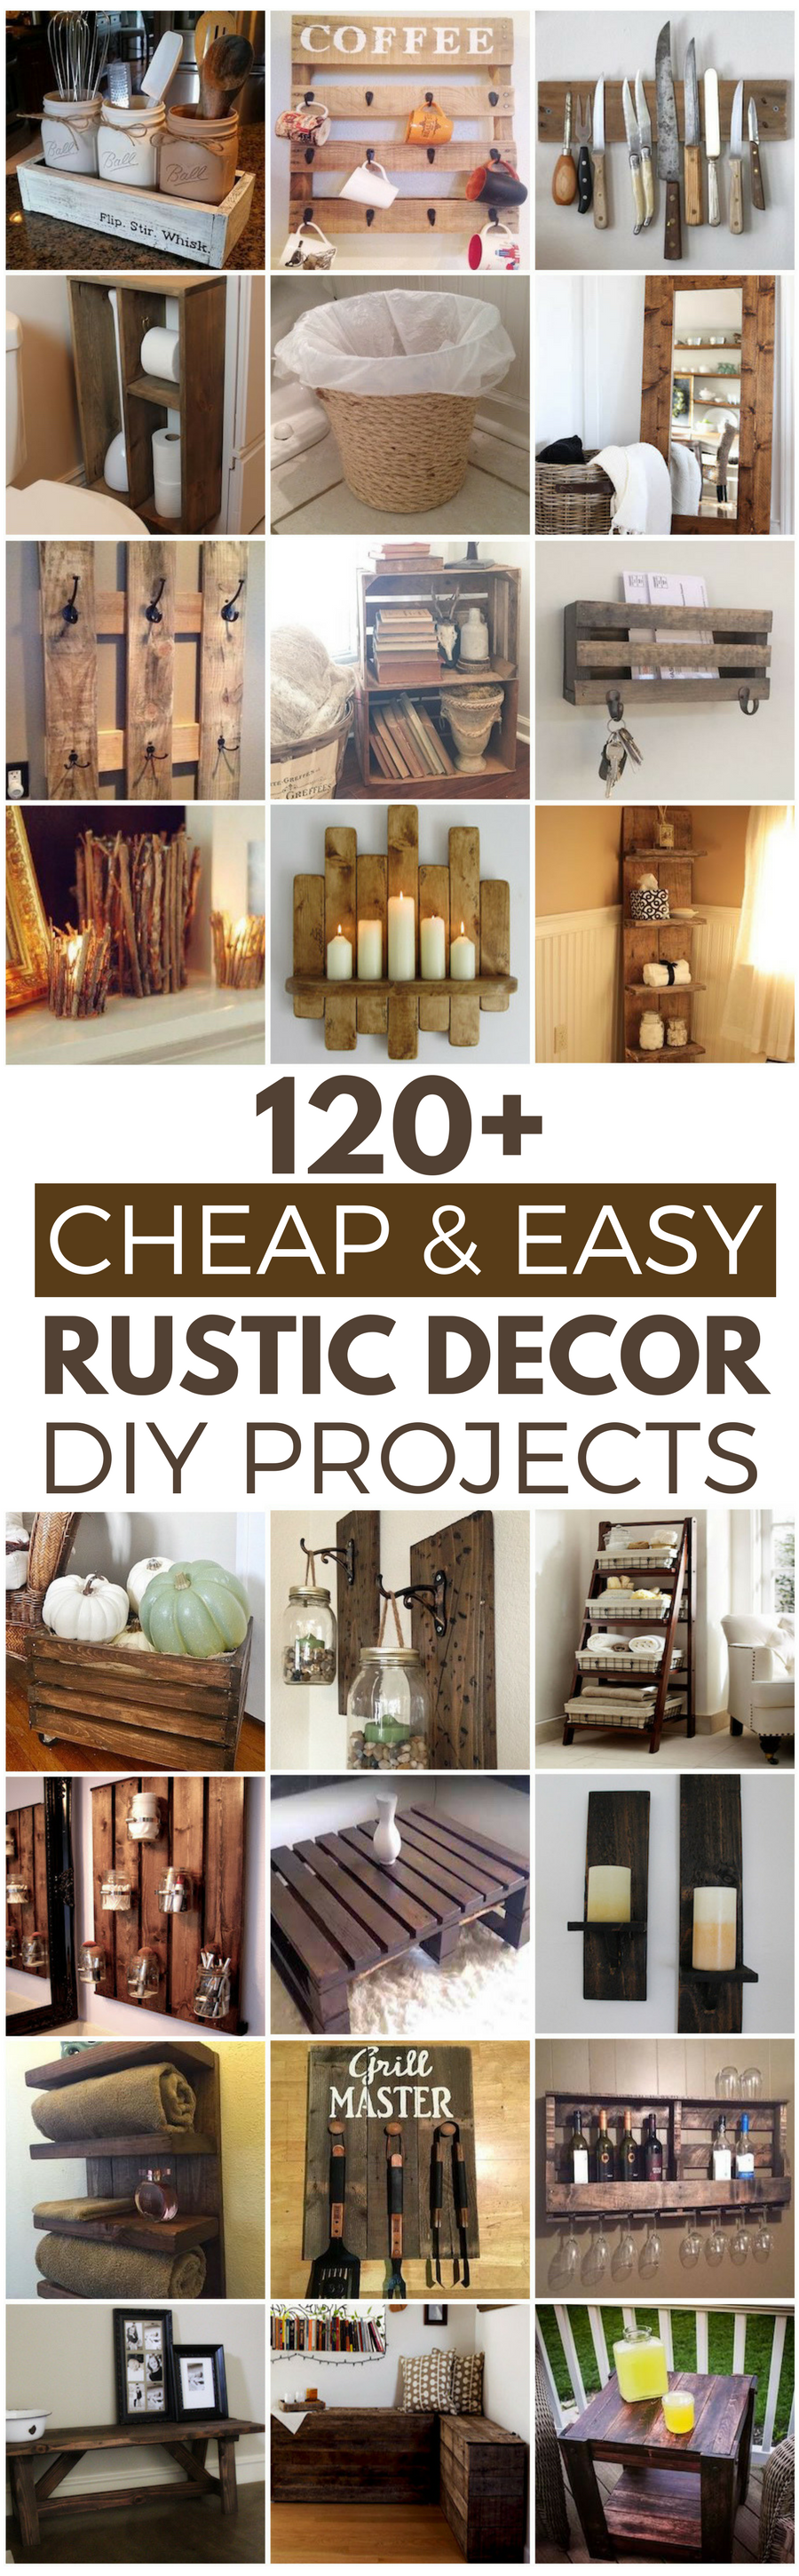 120 Cheap And Easy Rustic Diy Home Decor Diy Decor Projects Diy